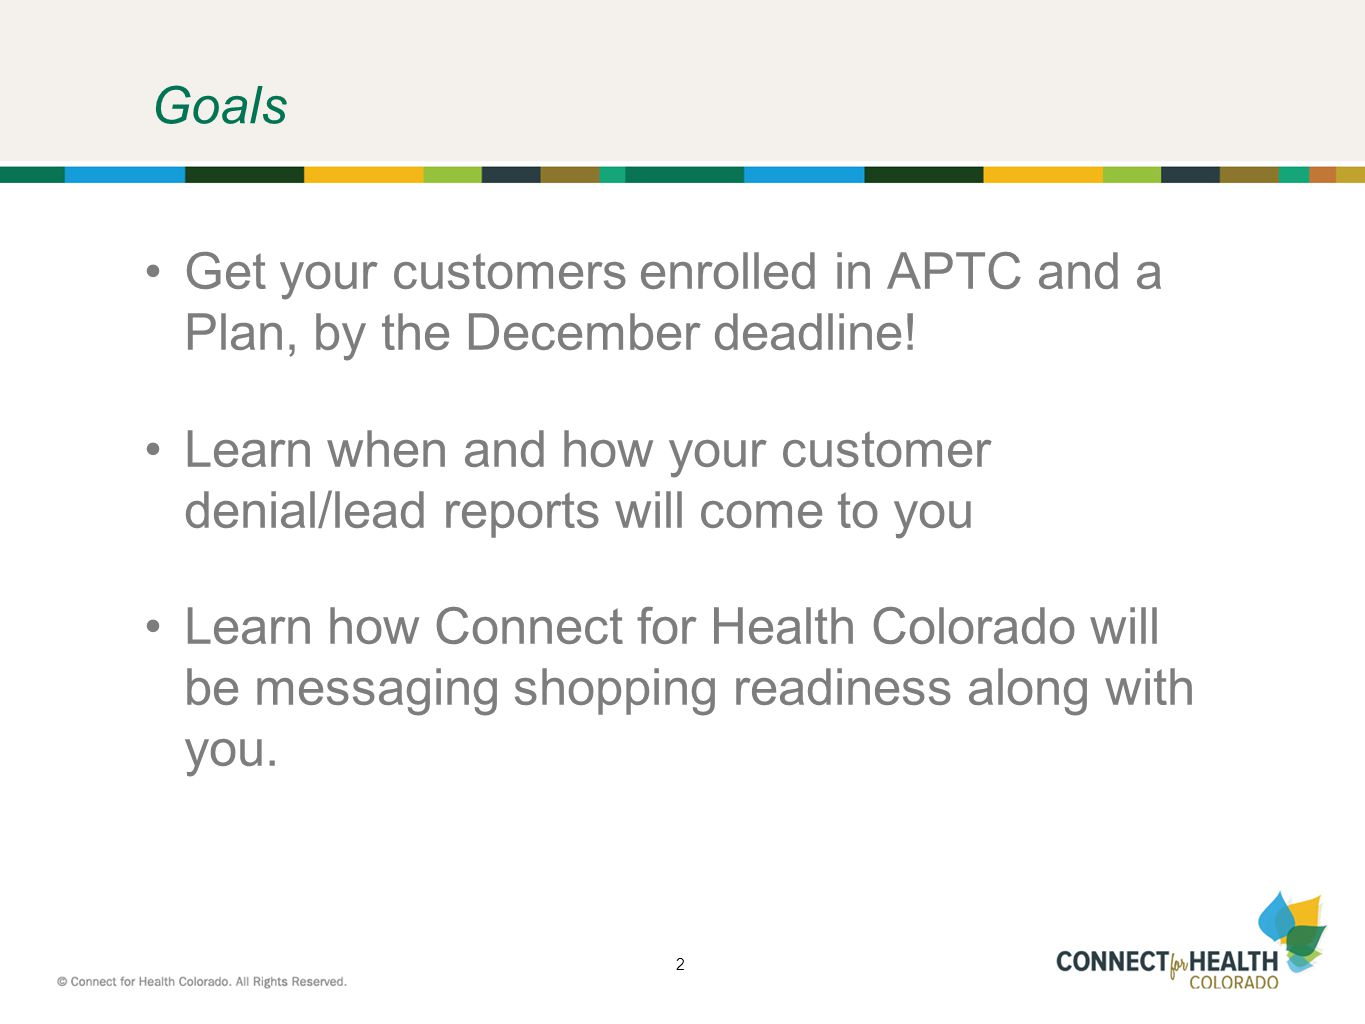 4 Key Dates November 26 th through December 2 nd, 2013 Denial report and lead Information webinars conducted December 5 th, 2013 Distribute /lead reports, with look back data to 10/1/13 December 5 th through December 16 th, 2013 You should enroll your customers.